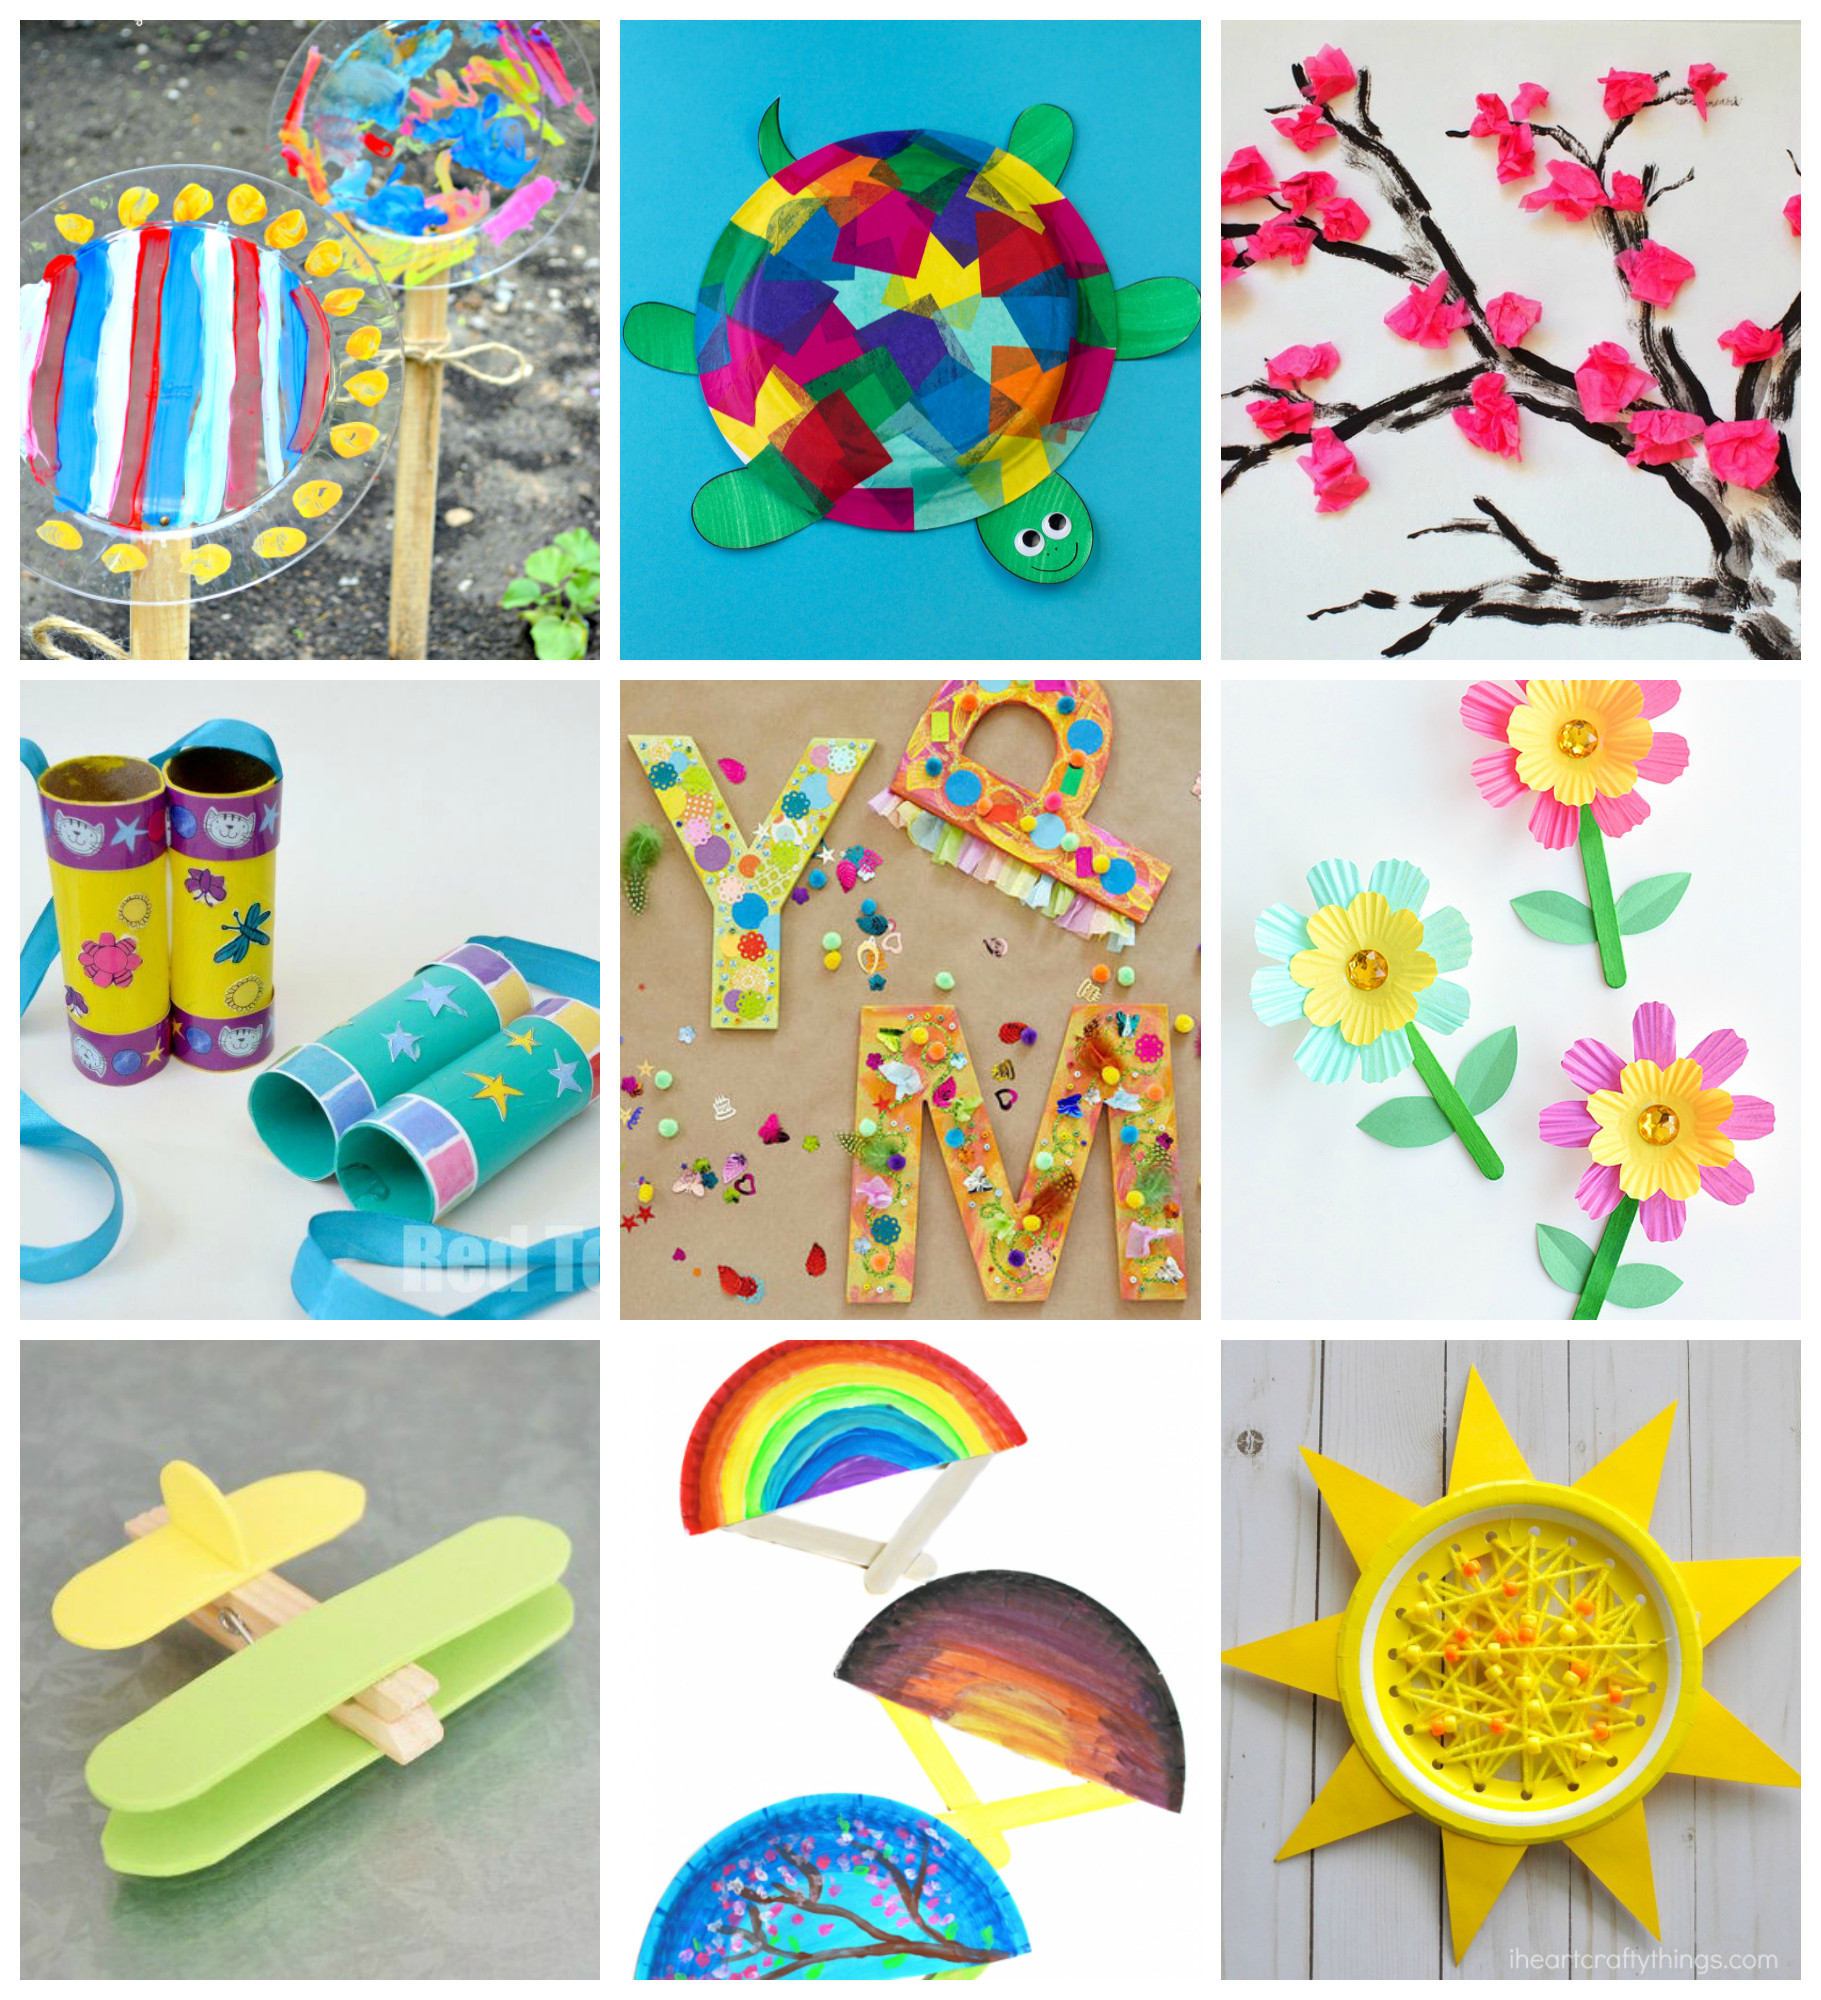 Best ideas about Easy Kids Crafts . Save or Pin 50 Quick & Easy Kids Crafts that ANYONE Can Make Now.